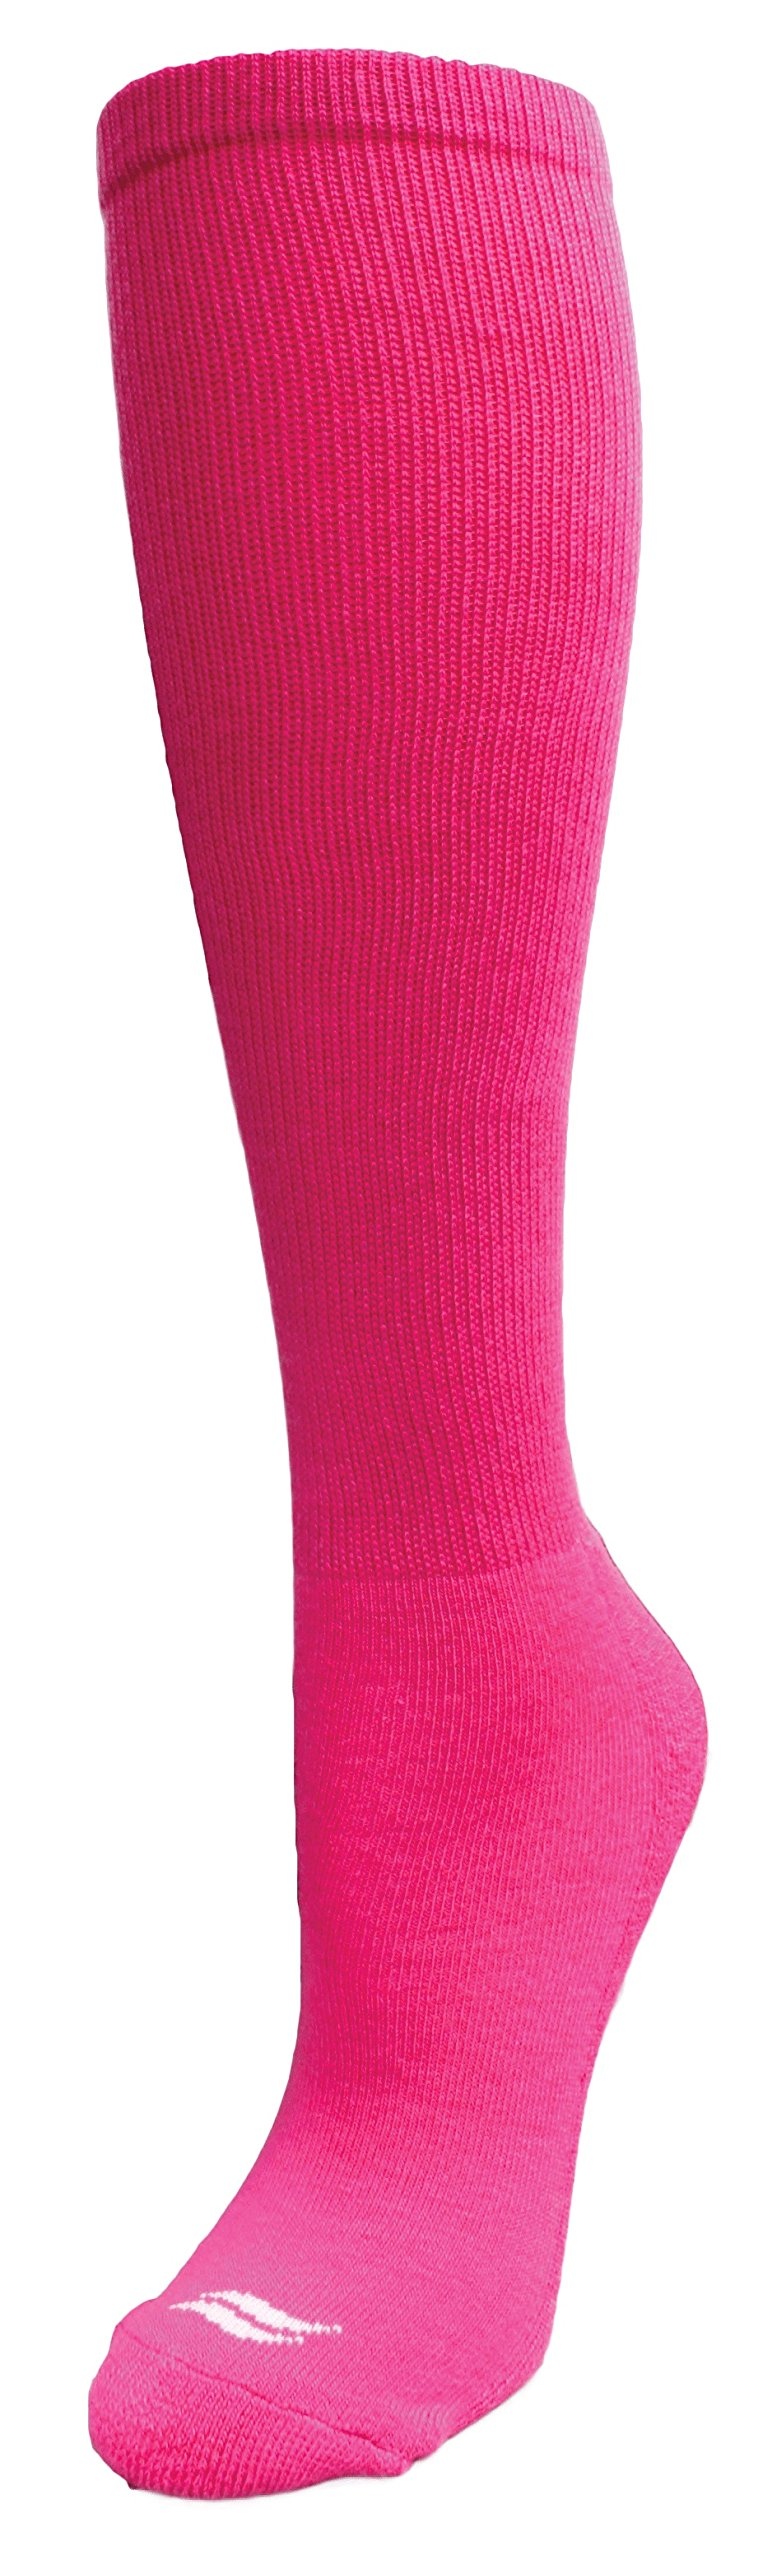 Sof Sole Girls' Child 13-Youth 4, Pink, Child 13-Youth 4 by Sof Sole